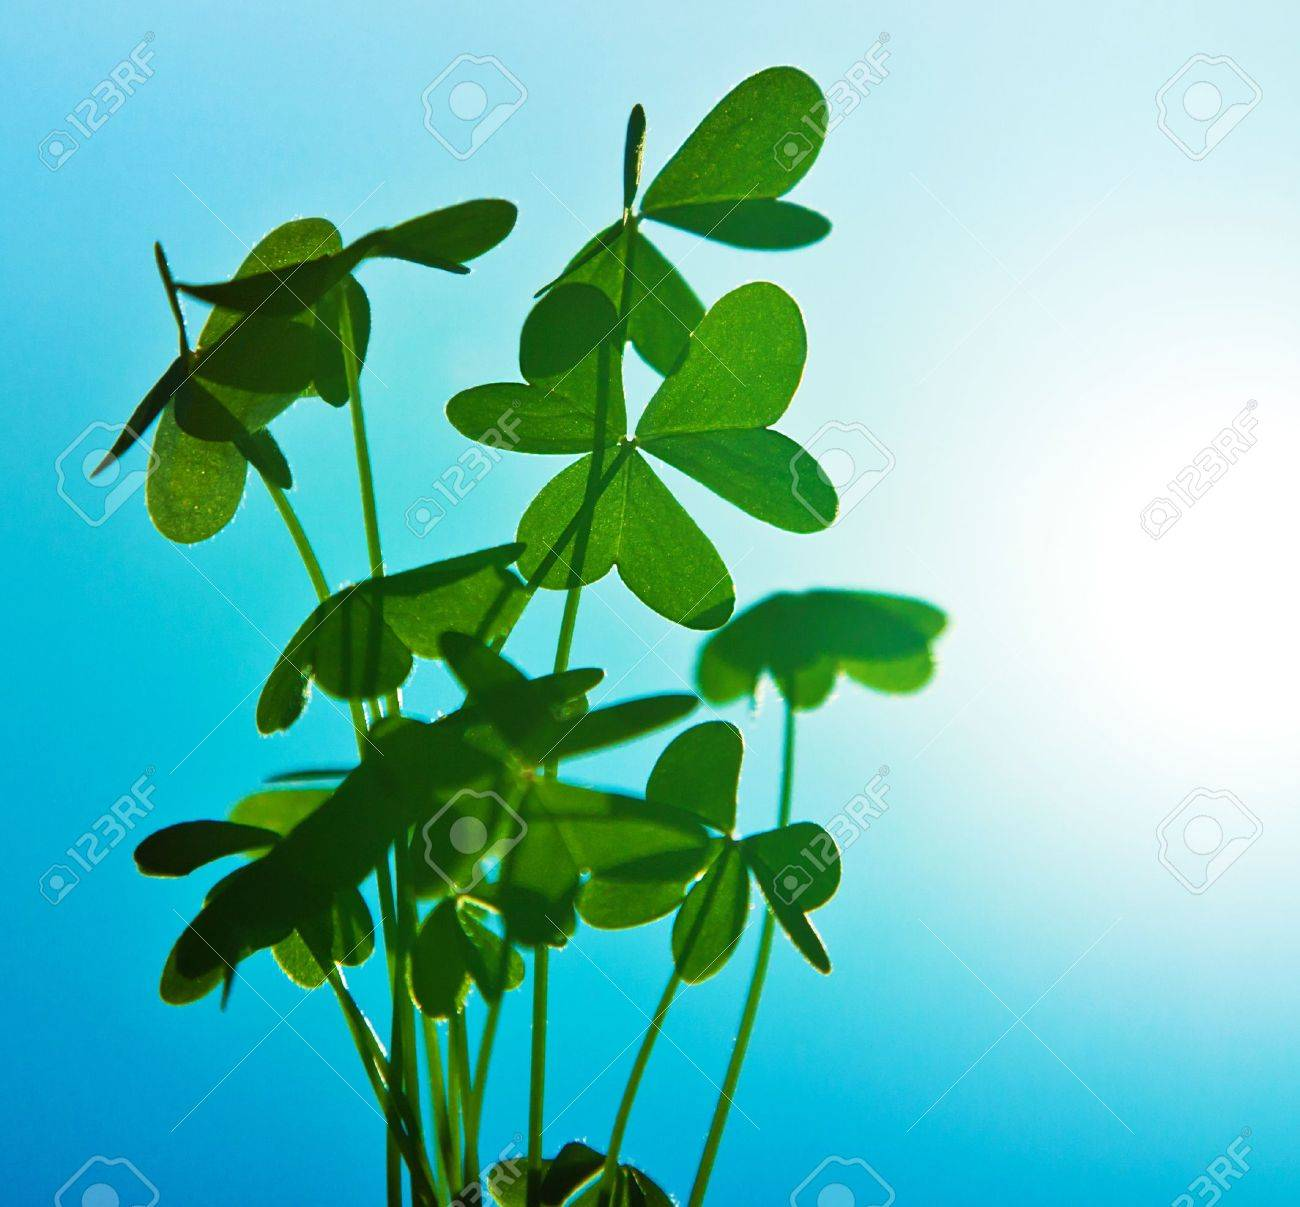 Clover at blue sky, green fresh shamrock plant, natural background, abstract floral image, spring nature Stock Photo - 12589240